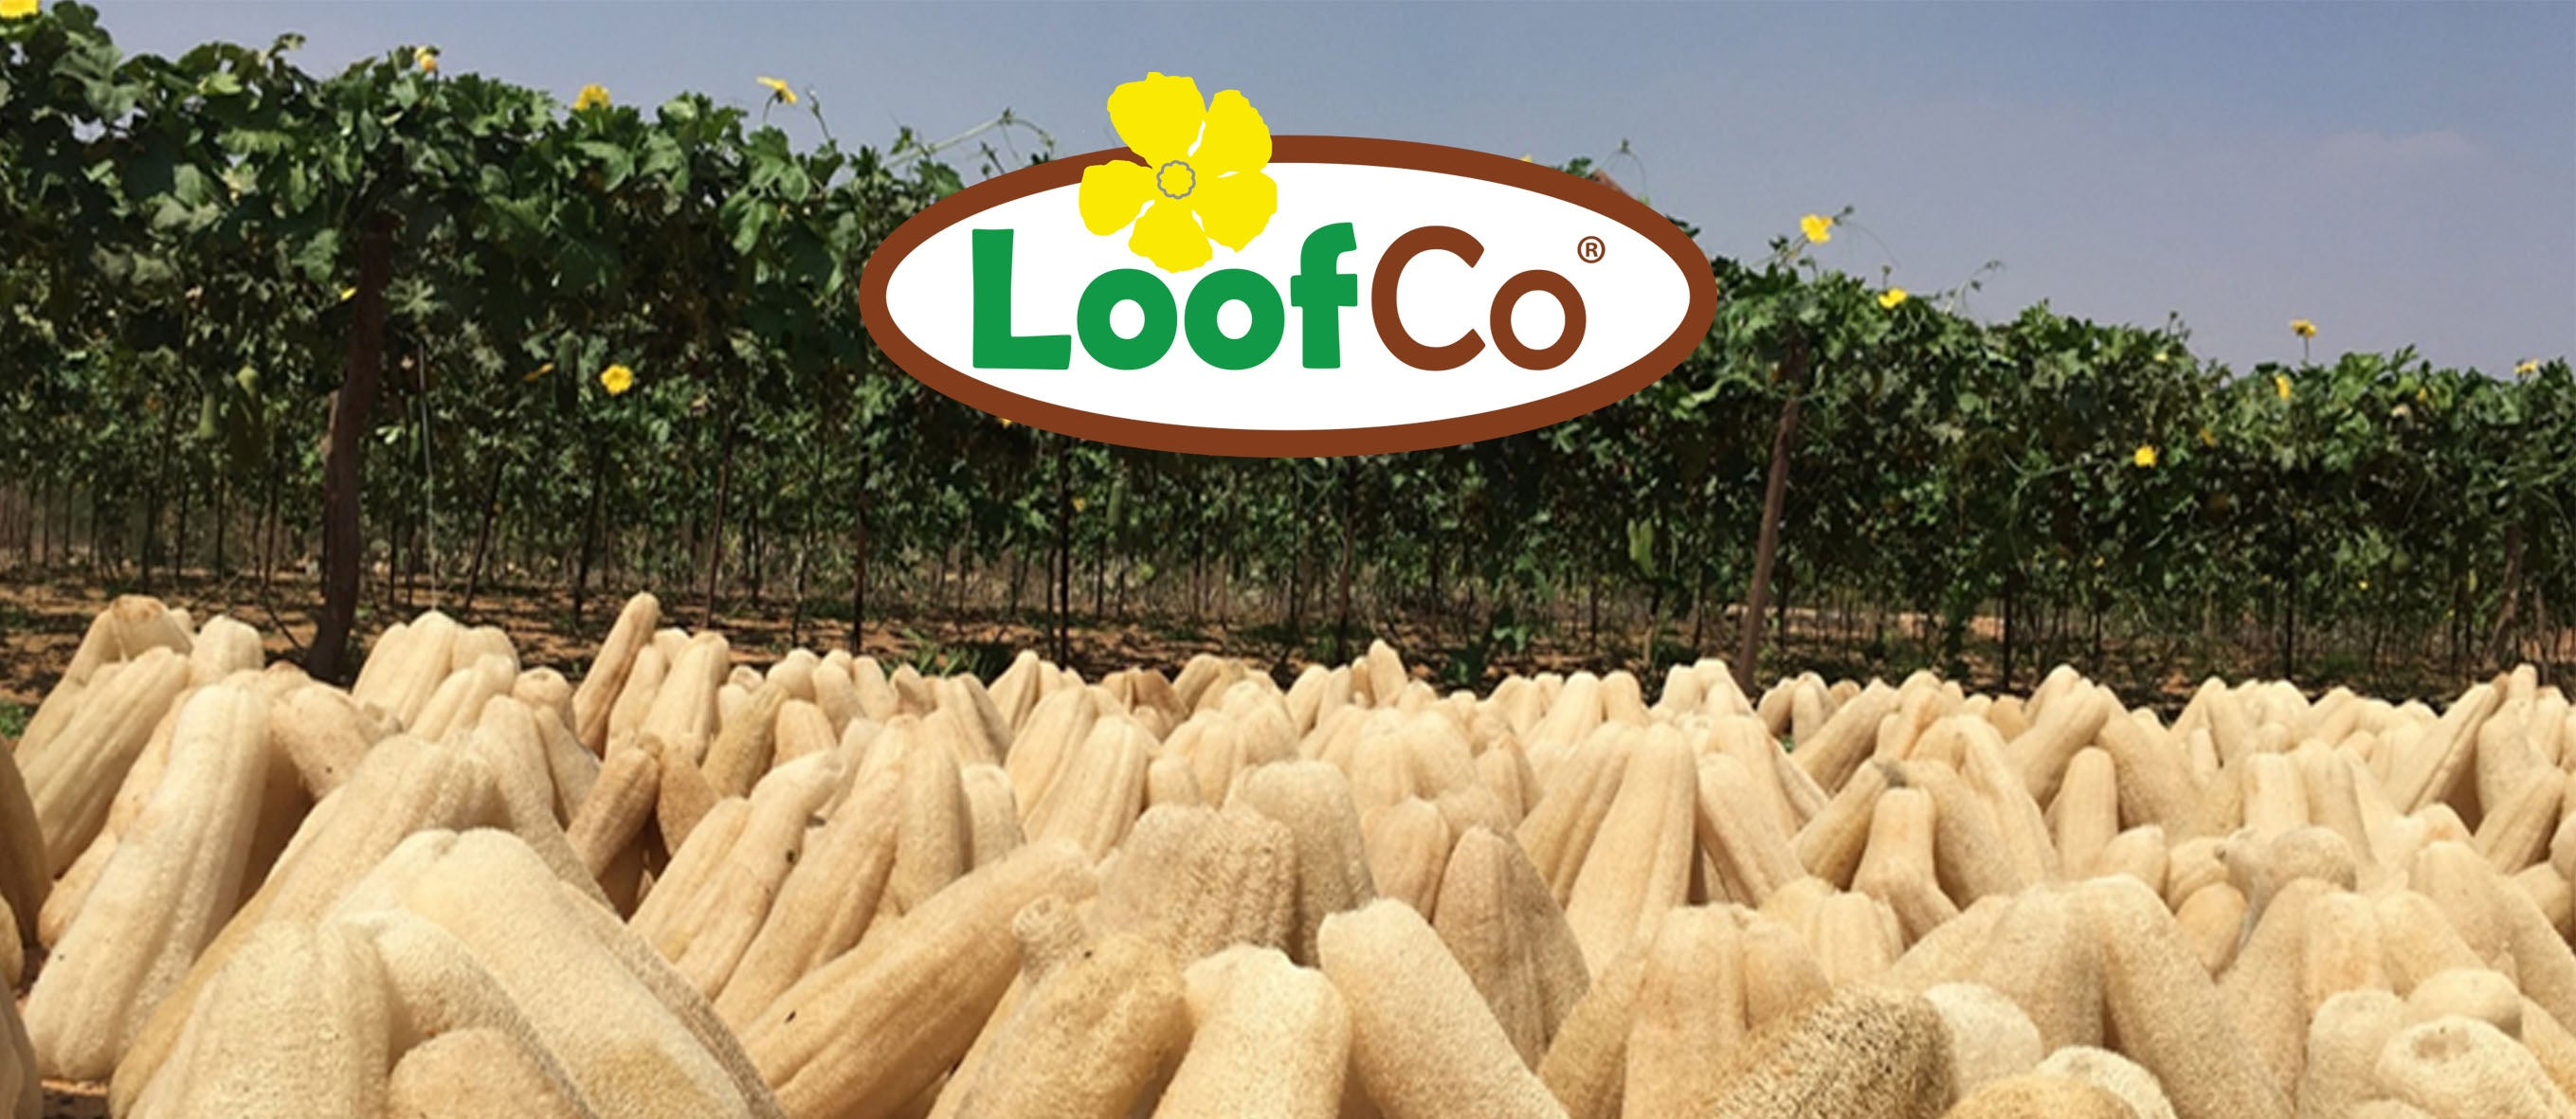 LoofCo loofahs harvested in Egypt